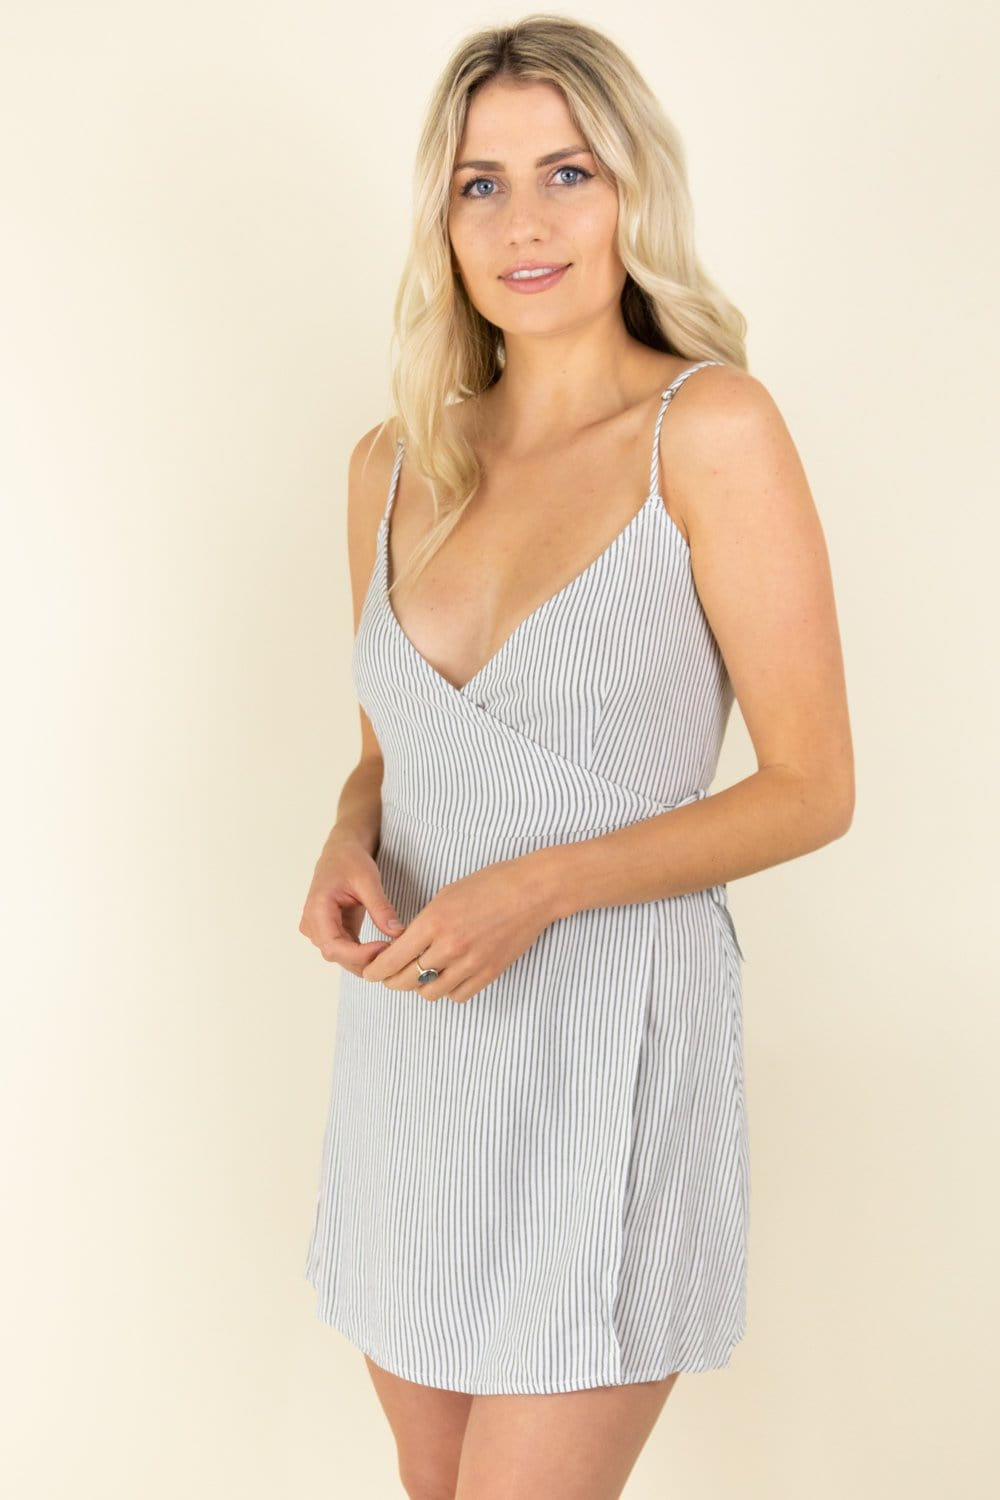 Amuse Society Positano Strappy Dress